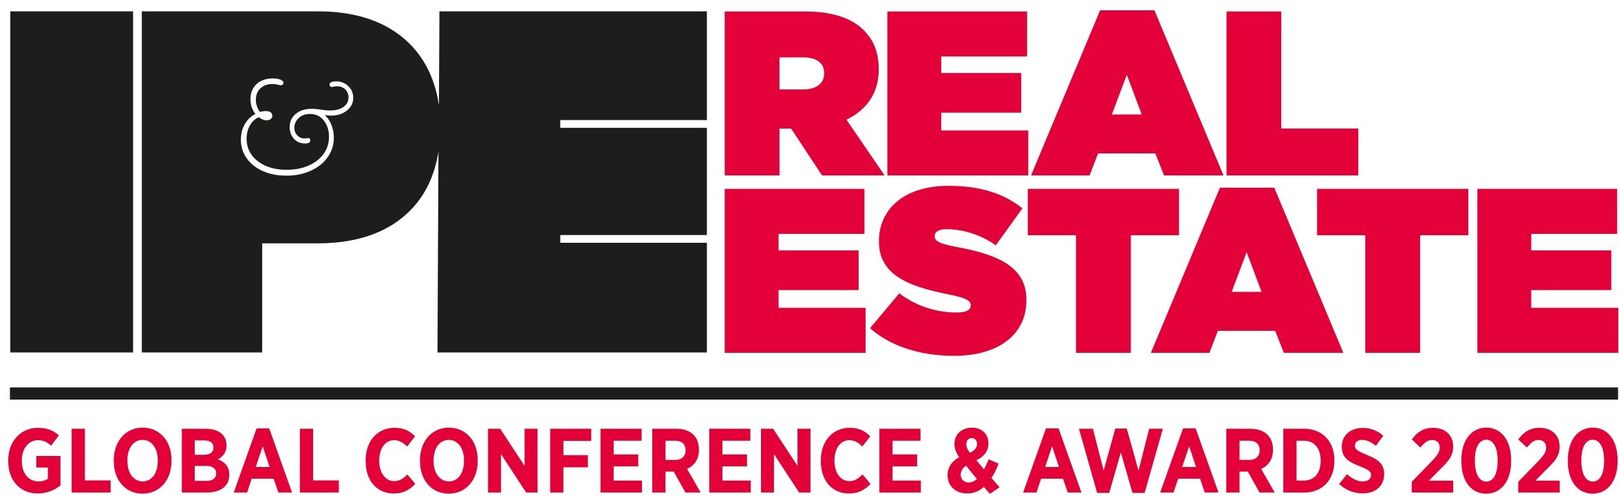 IPE Real Estate Global Conference & Awards 2020